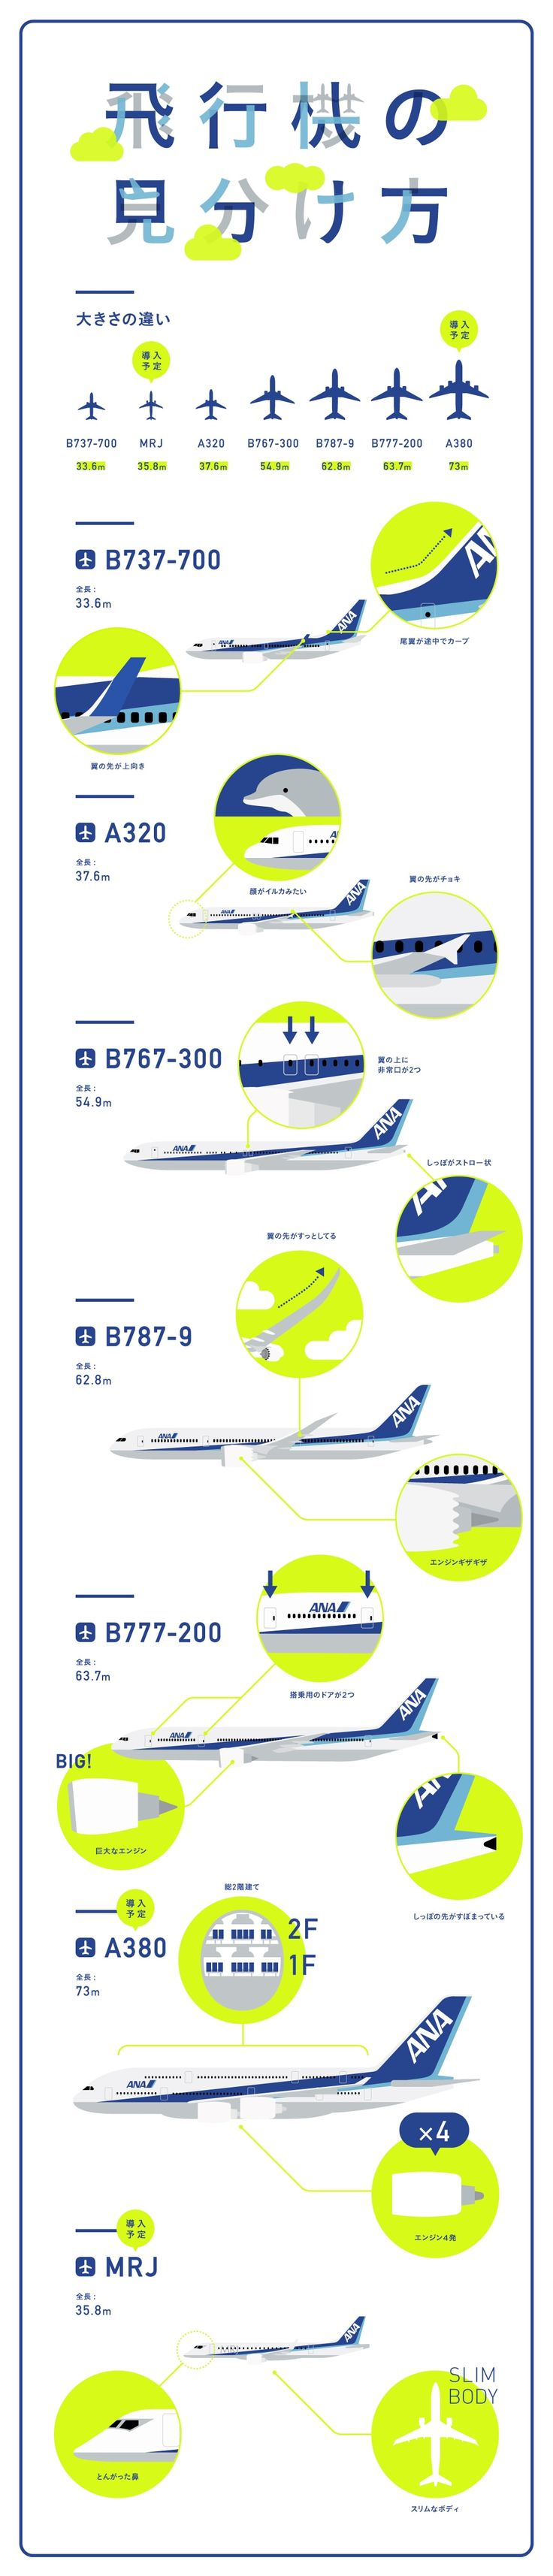 飛行機の見分け方|Infographics|ANA Travel & Lifehttps://www.ana.co.jp/travelandlife/infographics/vol17/